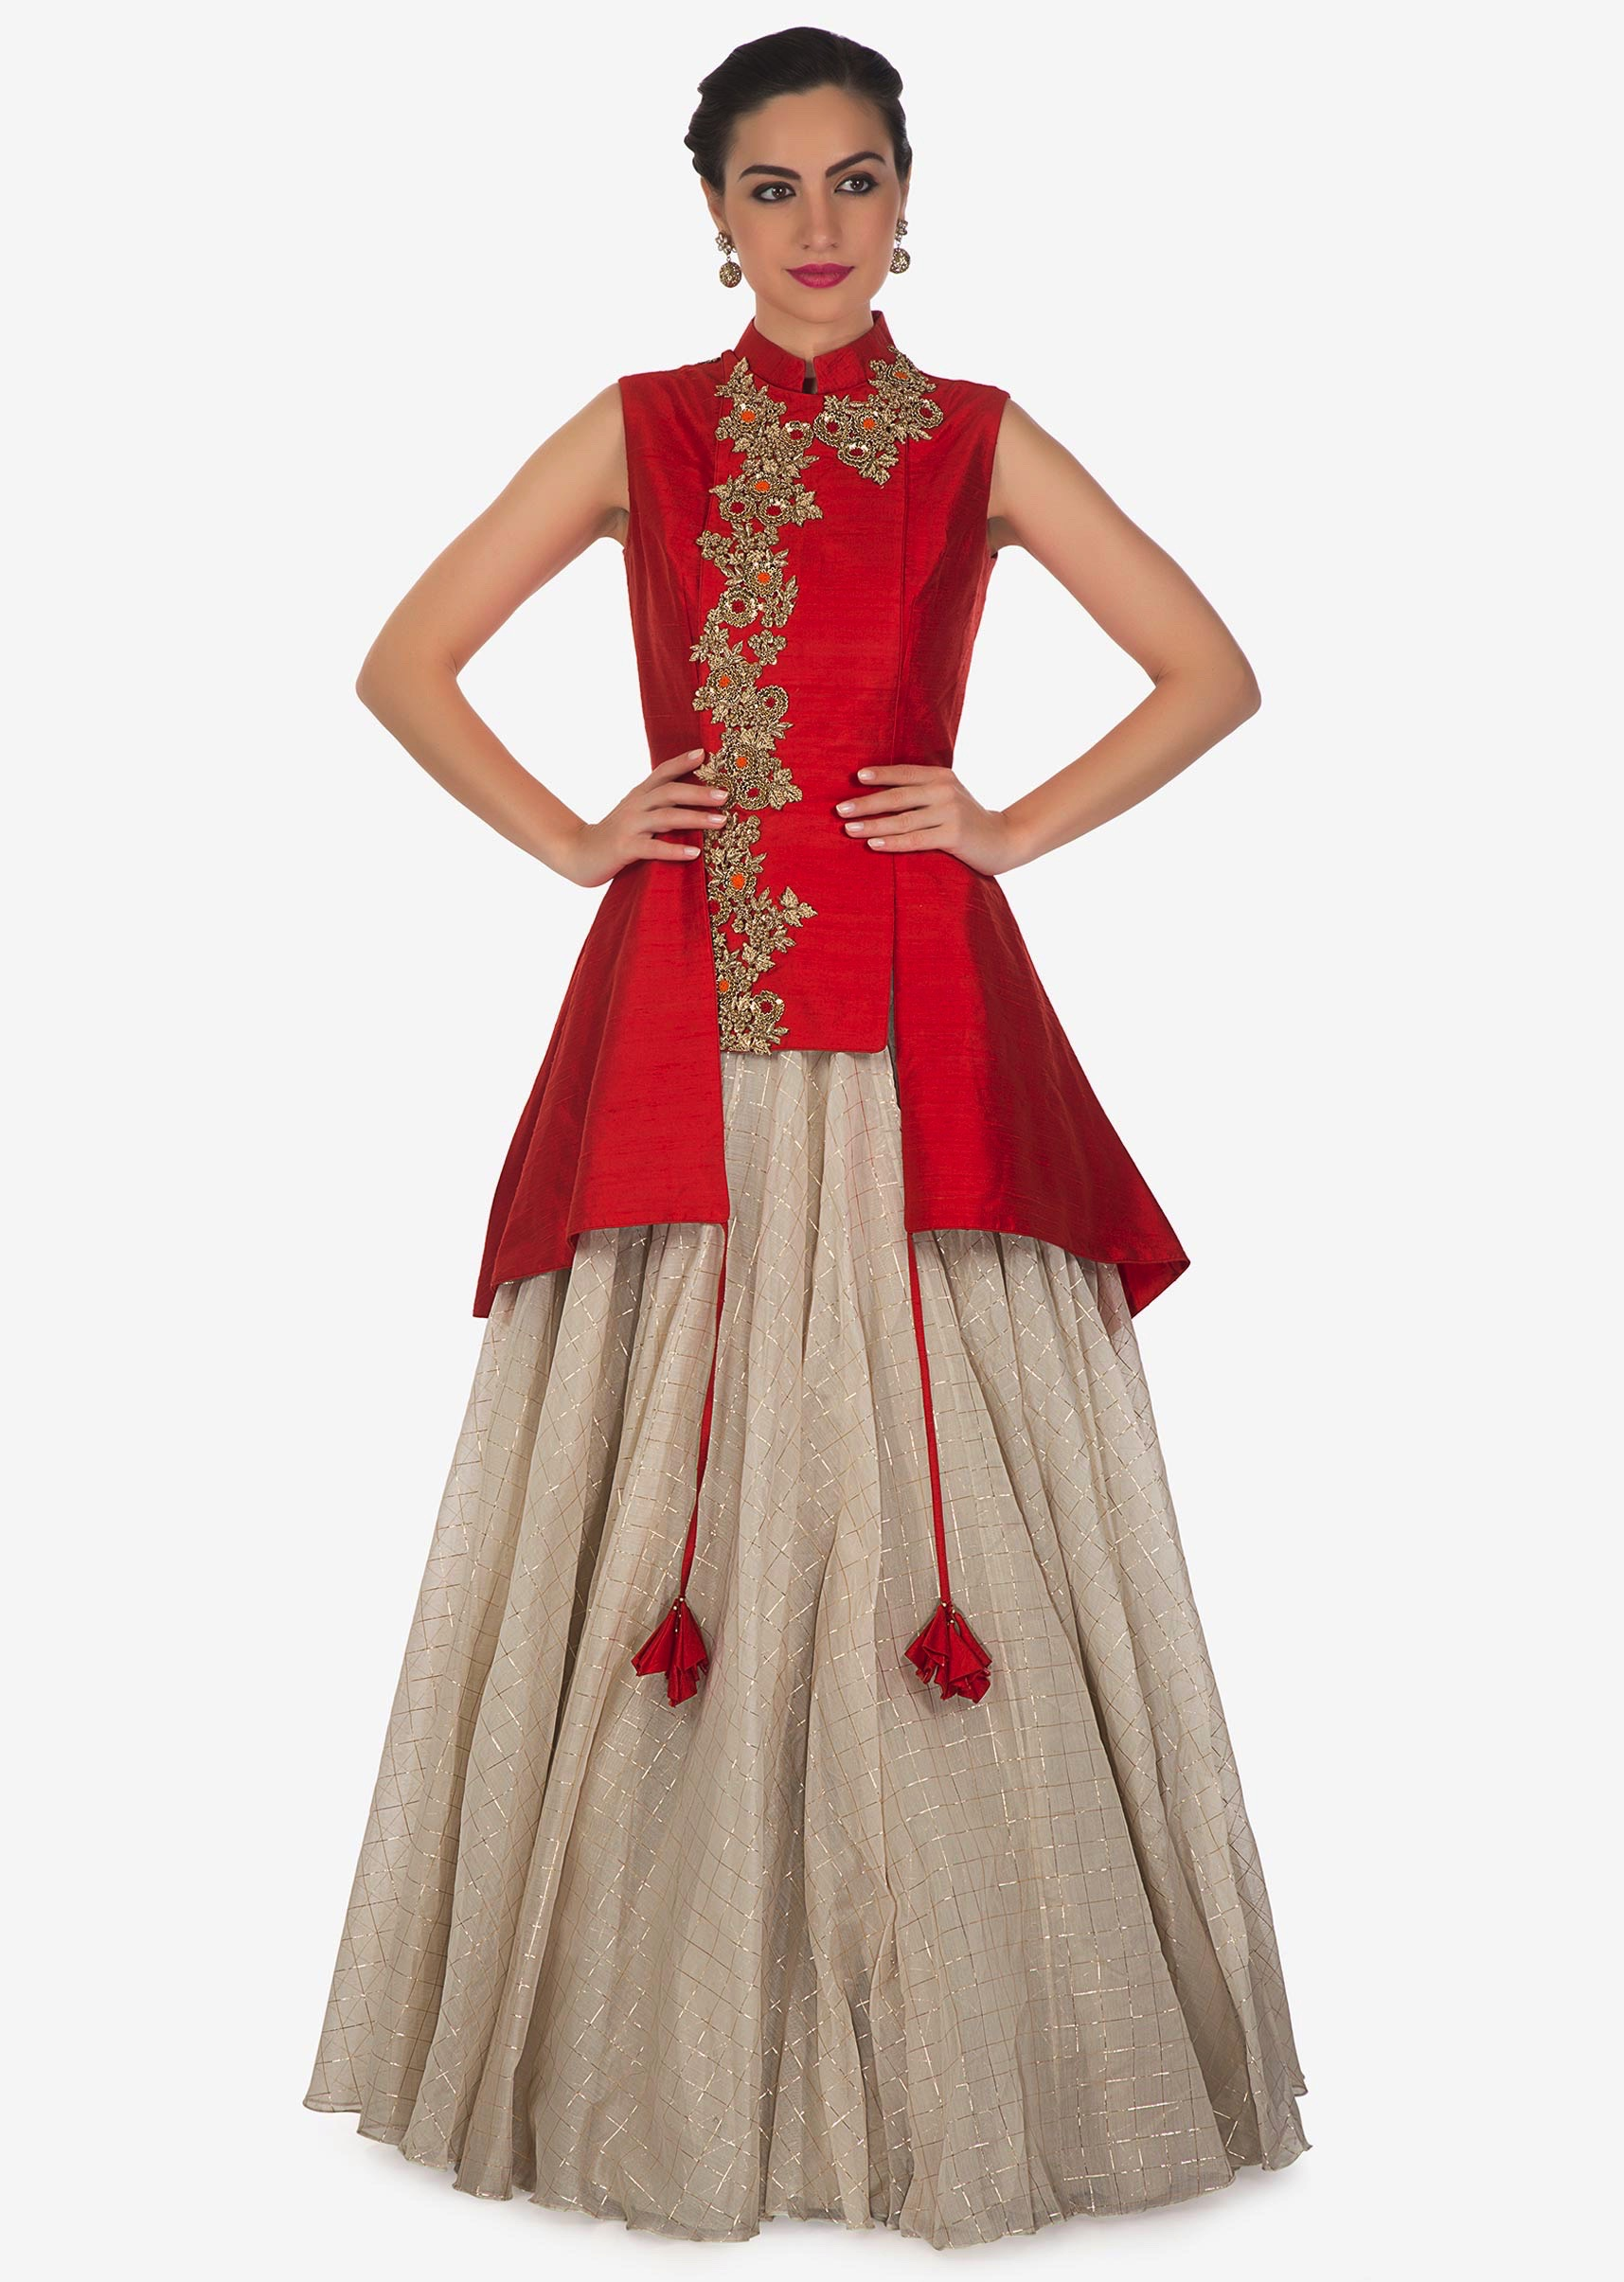 82fef0cdd4a9ee Cream lehenga matched with red jacket blouse adorn in french knot  embroidery only on KalkiMore Detail